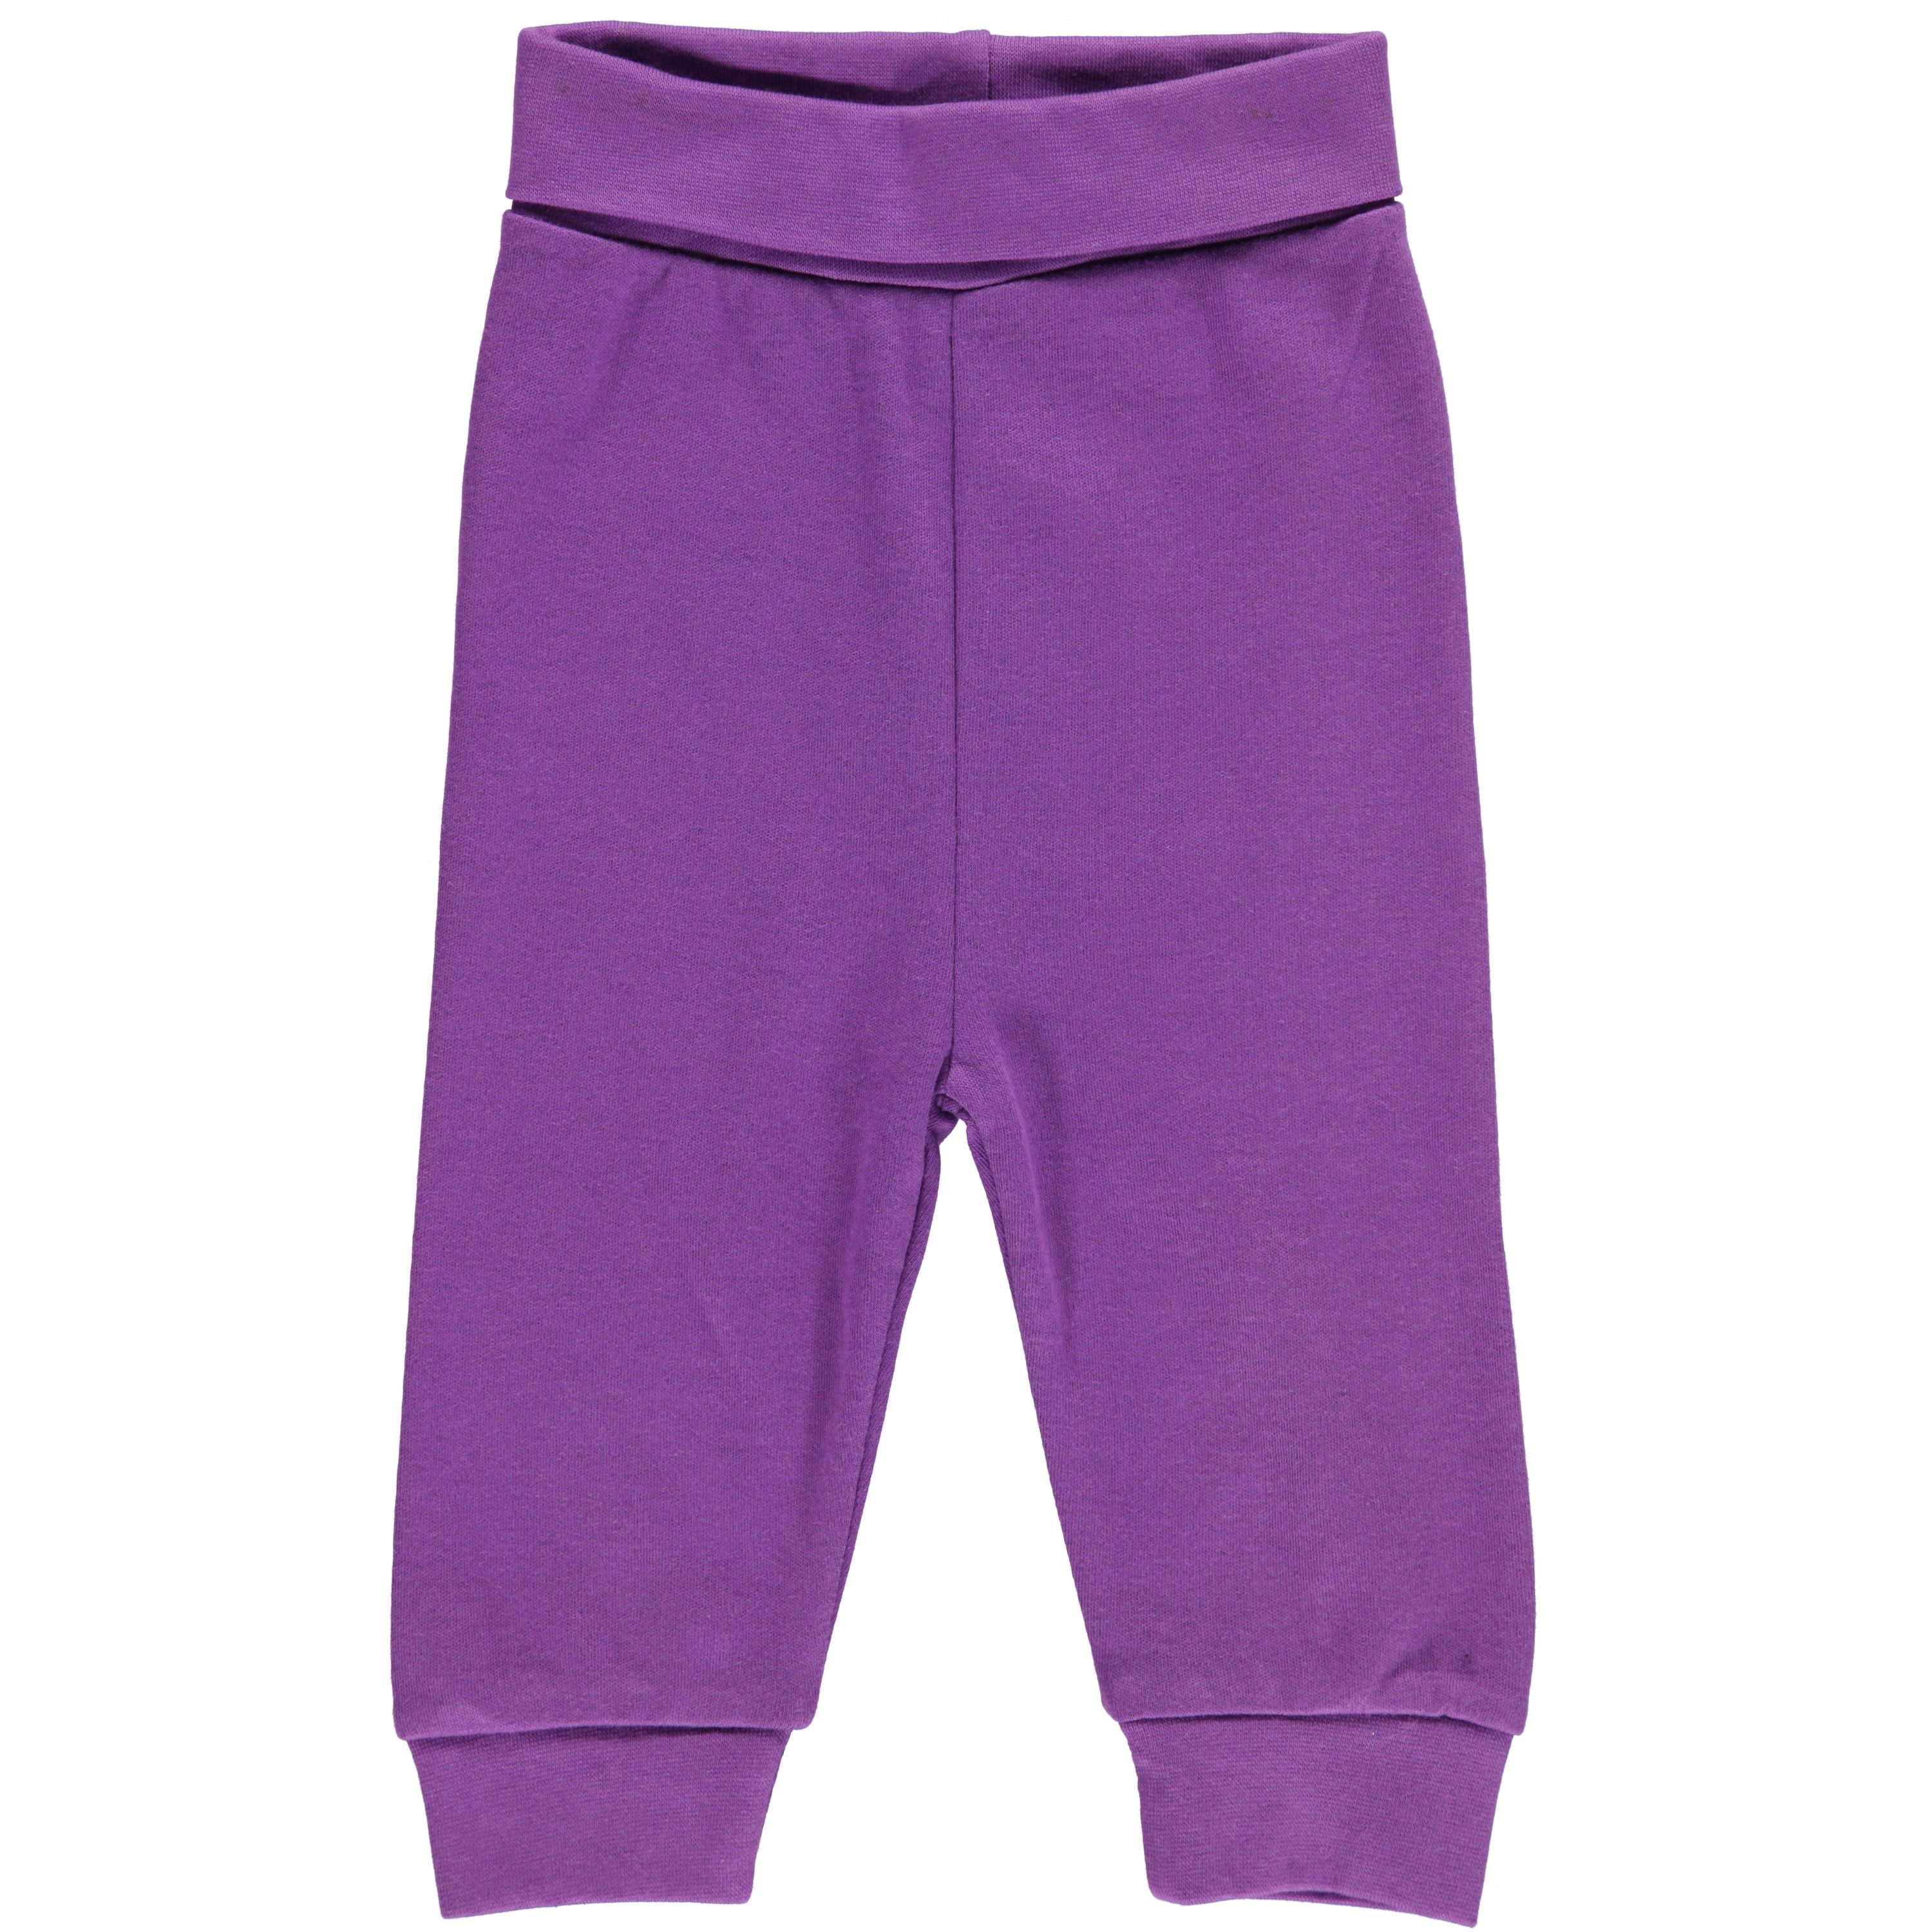 Image of Sweat Pants fra Pippi - Lilla (366-022-633)